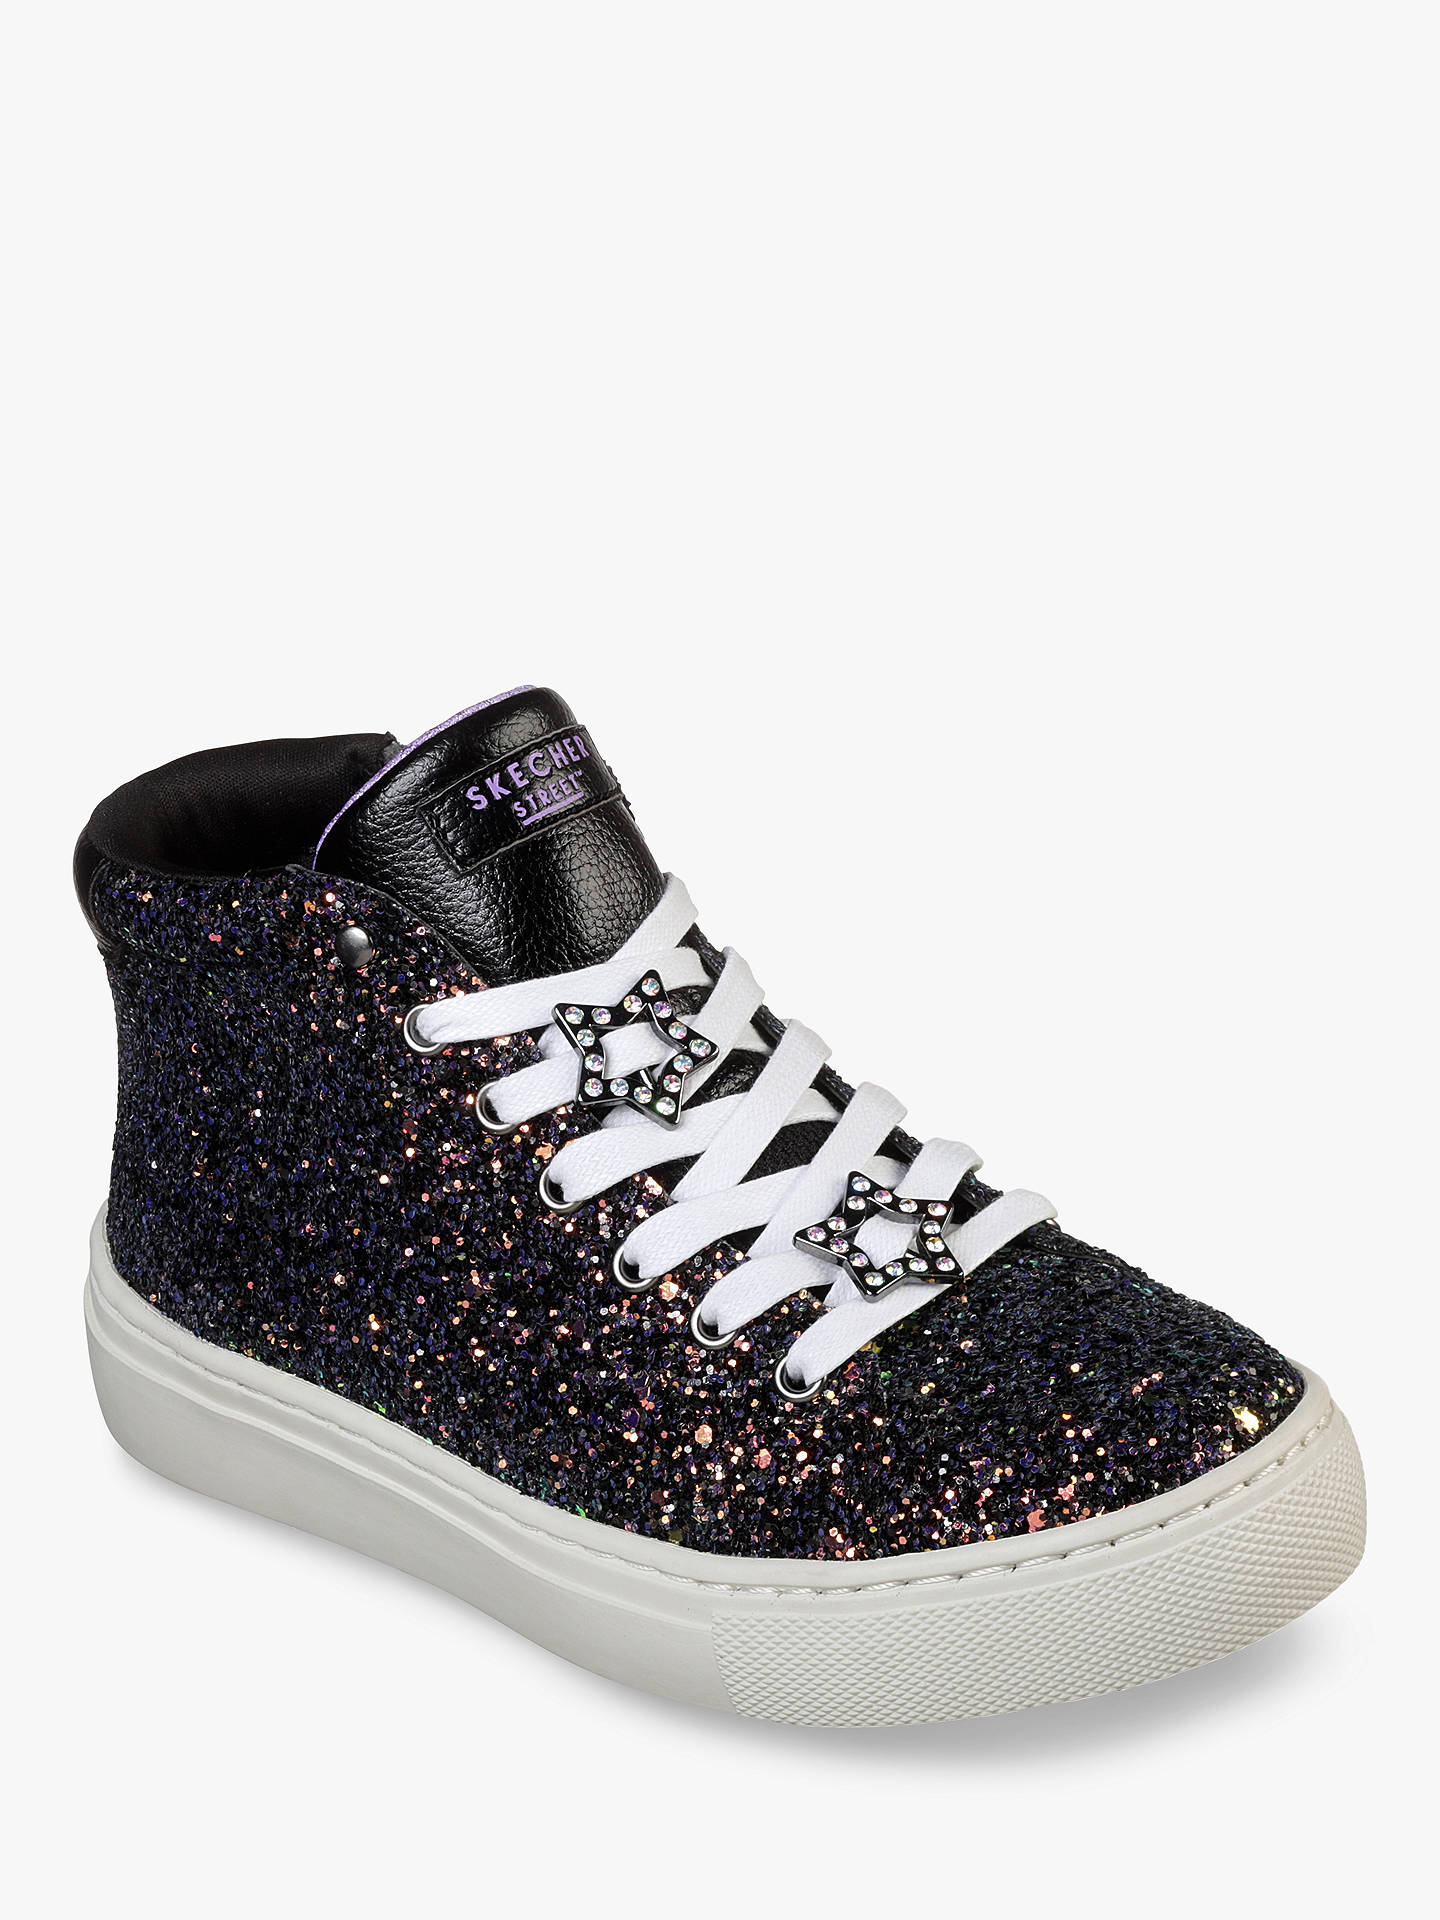 168e2f51a44 Buy Skechers Side Street Night Life High Top Trainers